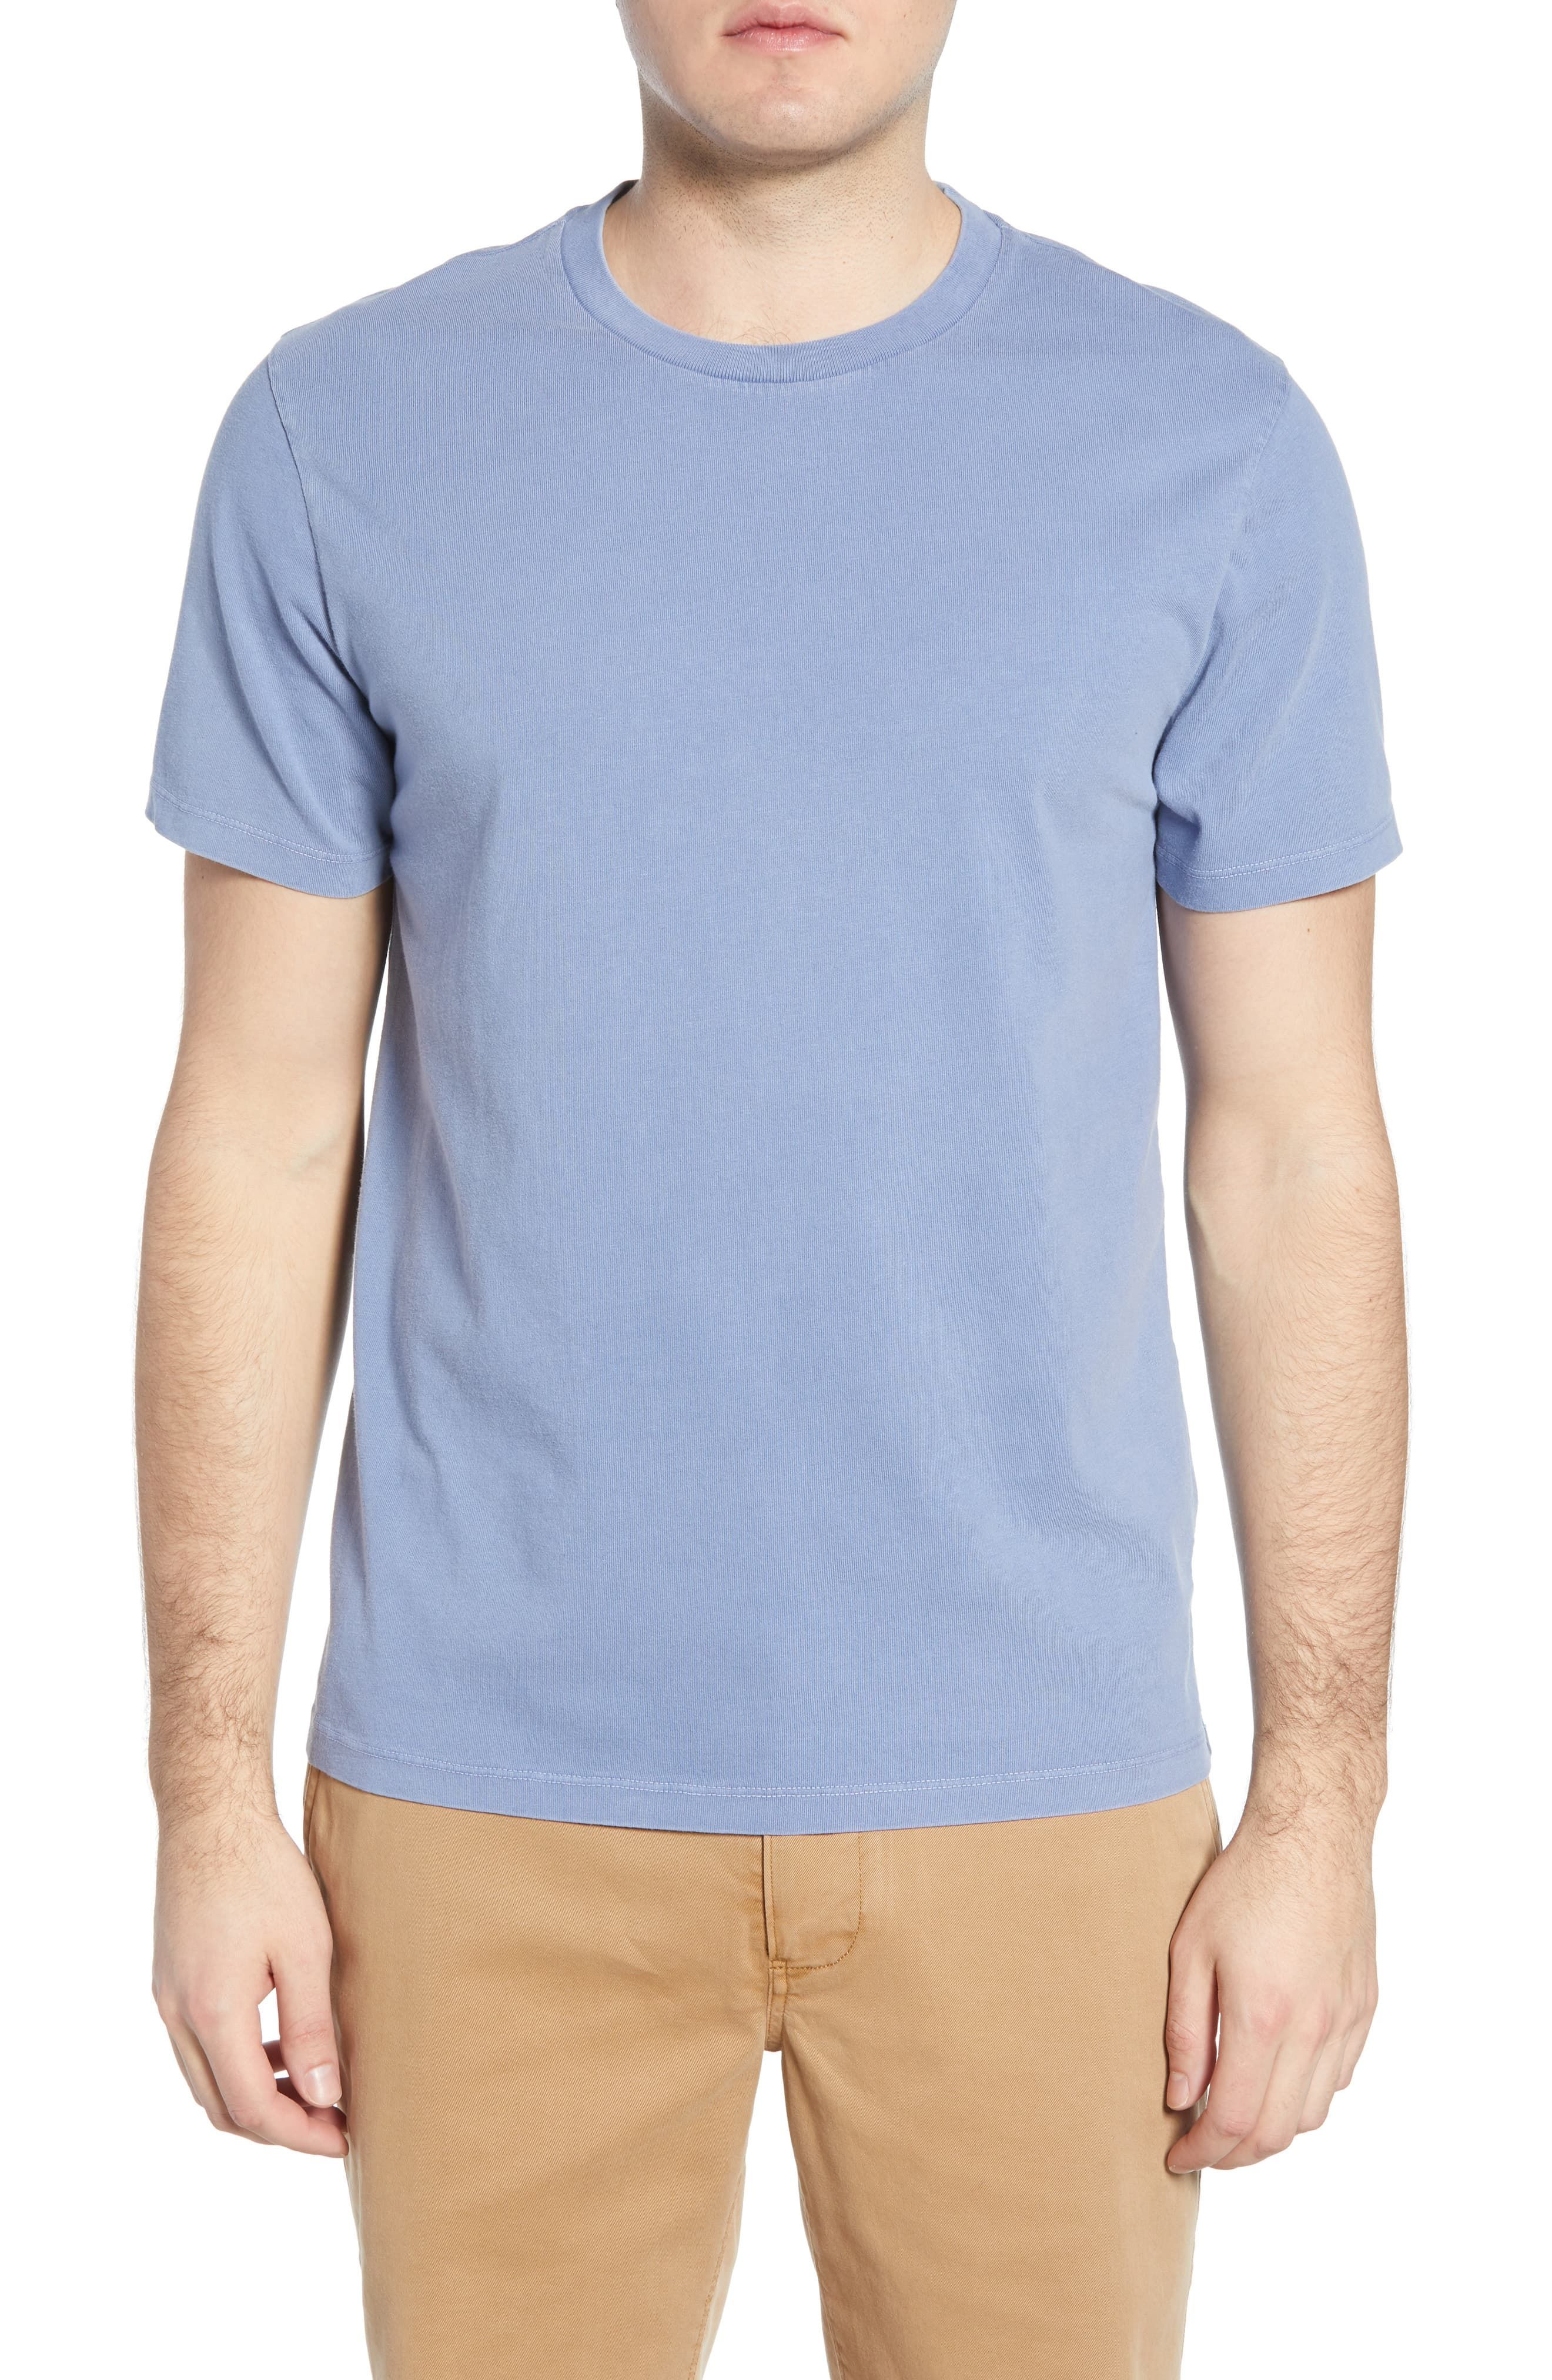 cc5f38c2 Men's Madewell Allday Slim Fit Garment Dyed T-Shirt, Size XX-Large -